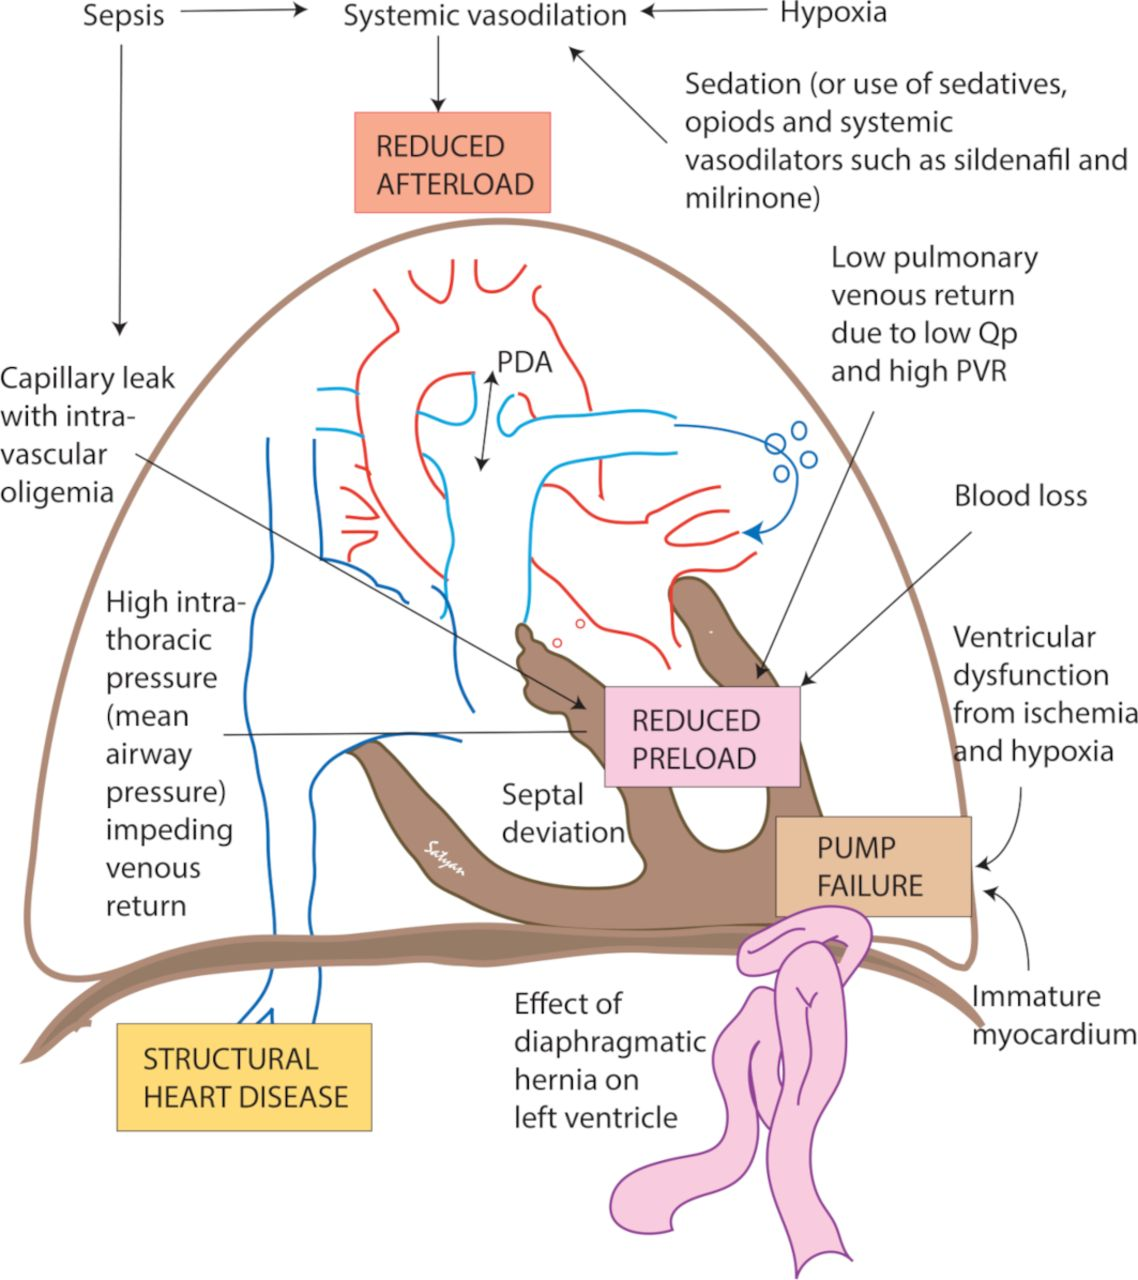 Management of systemic hypotension in term infants with persistent  pulmonary hypertension of the newborn: an illustrated review | ADC Fetal &  Neonatal Edition